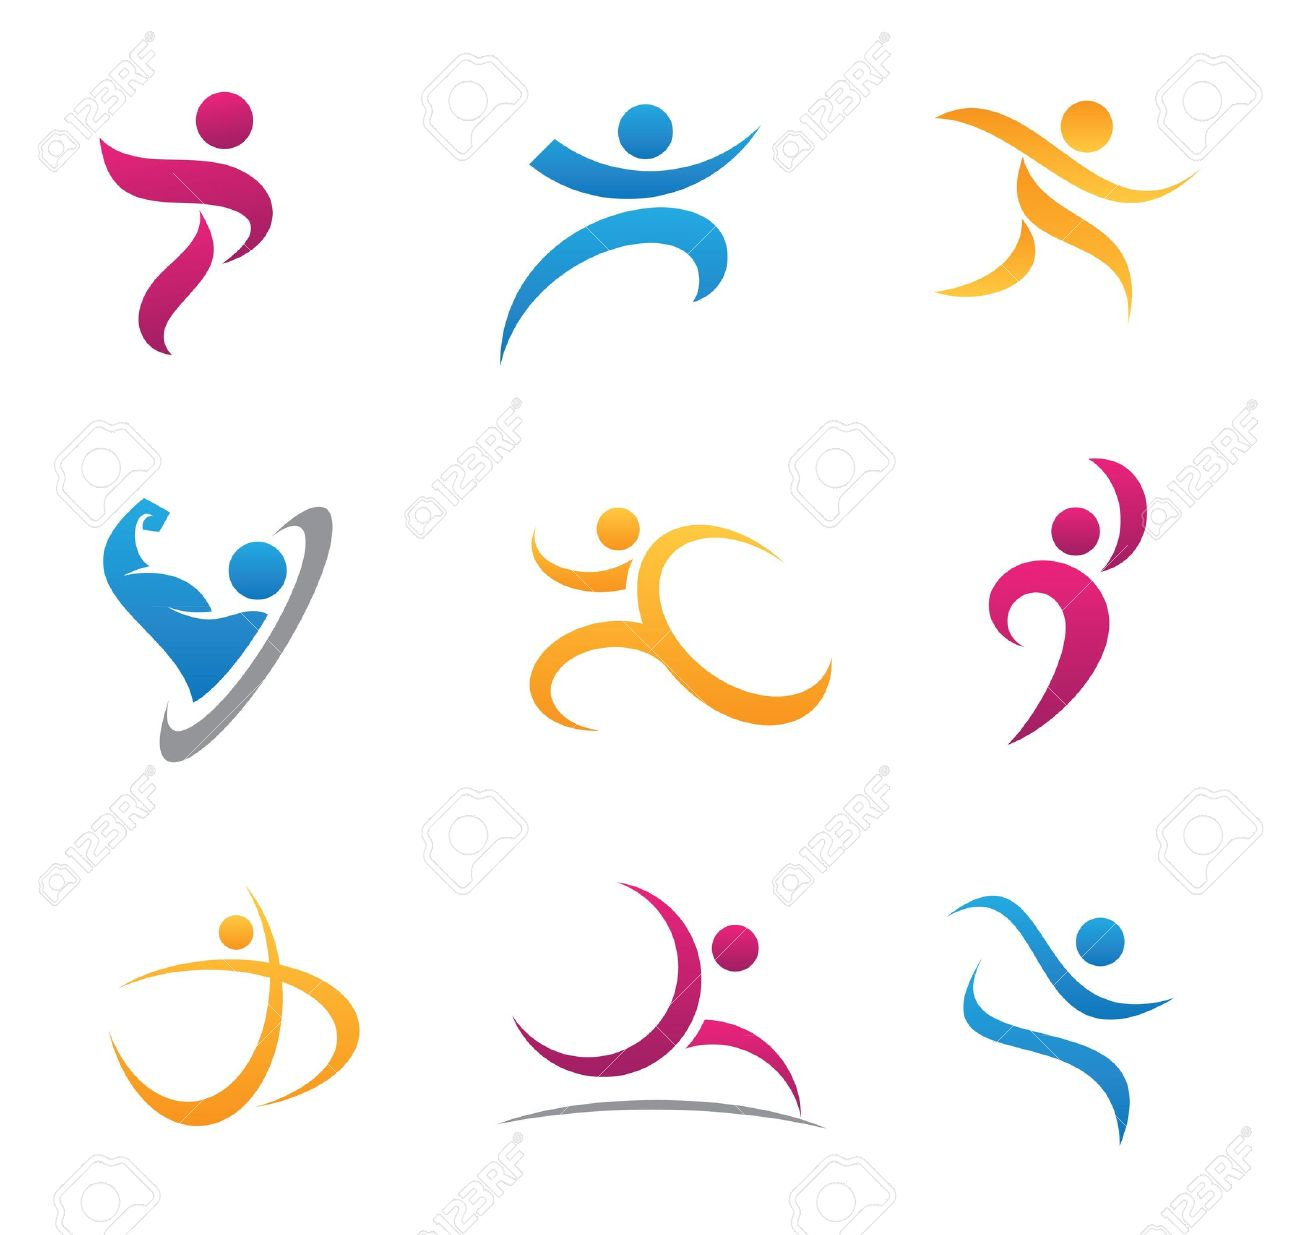 Sport symbol and icon Stock Vector - 20846731